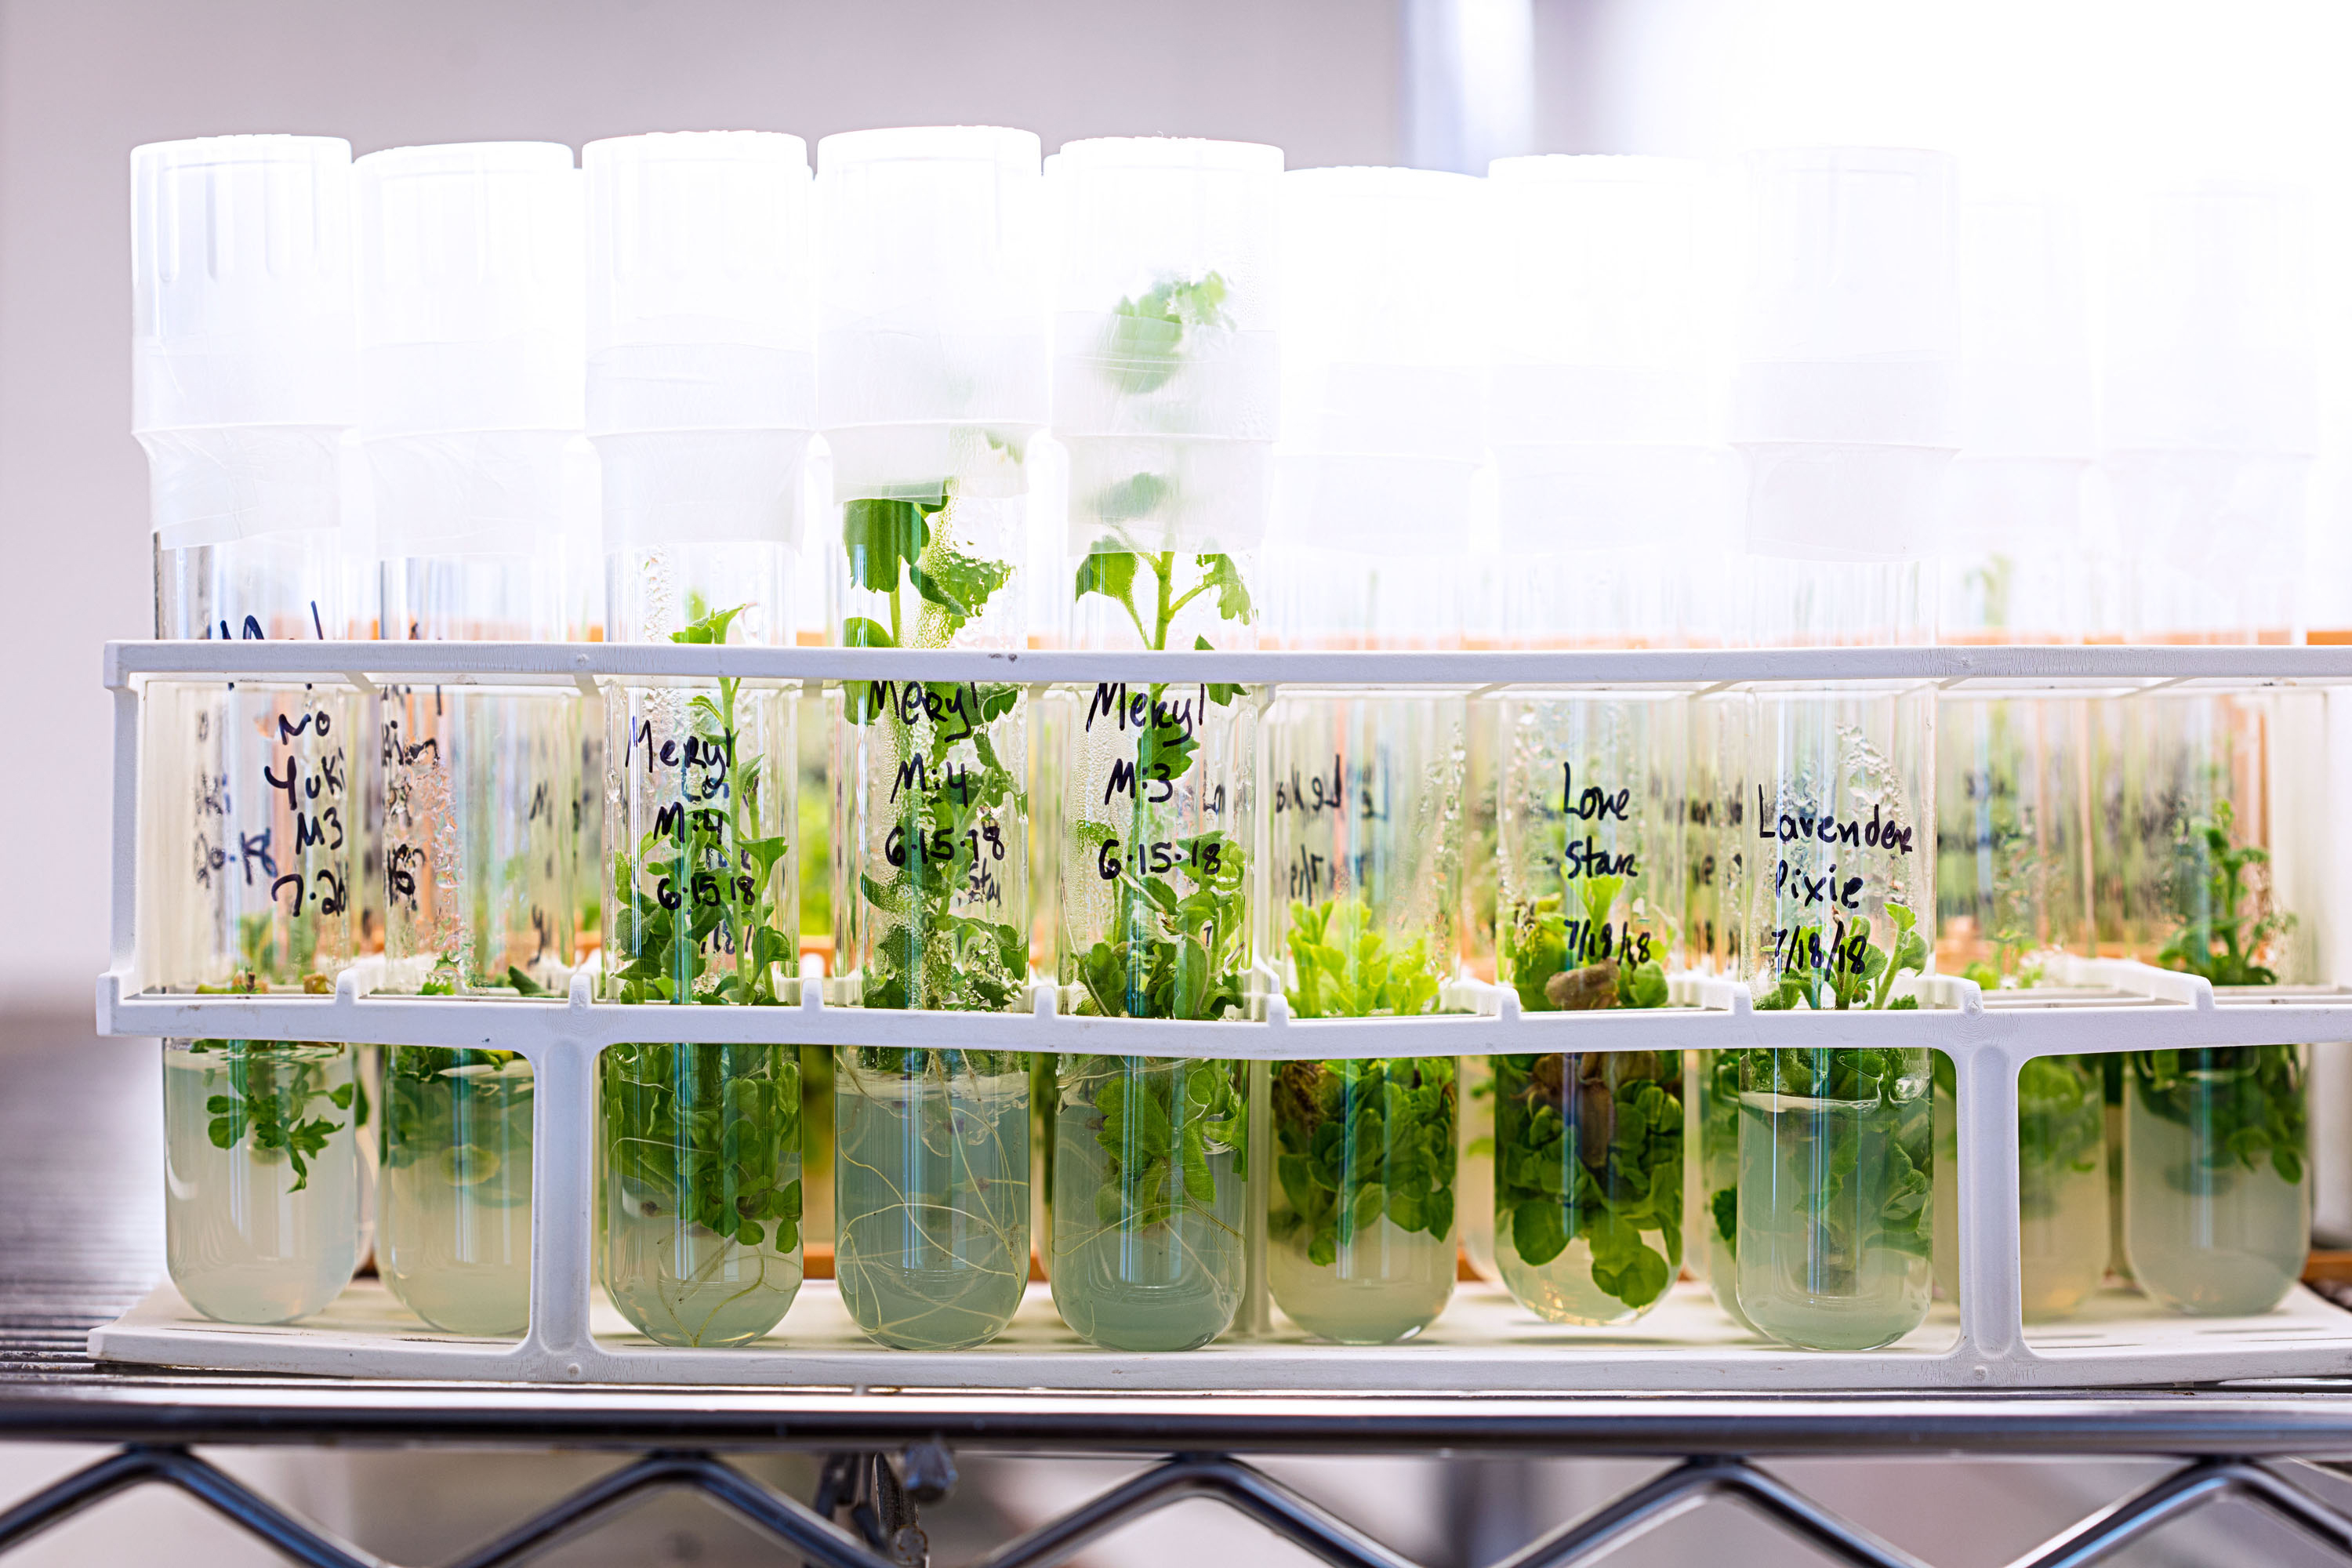 rare Japanese and Chinese cultivars in test tubes